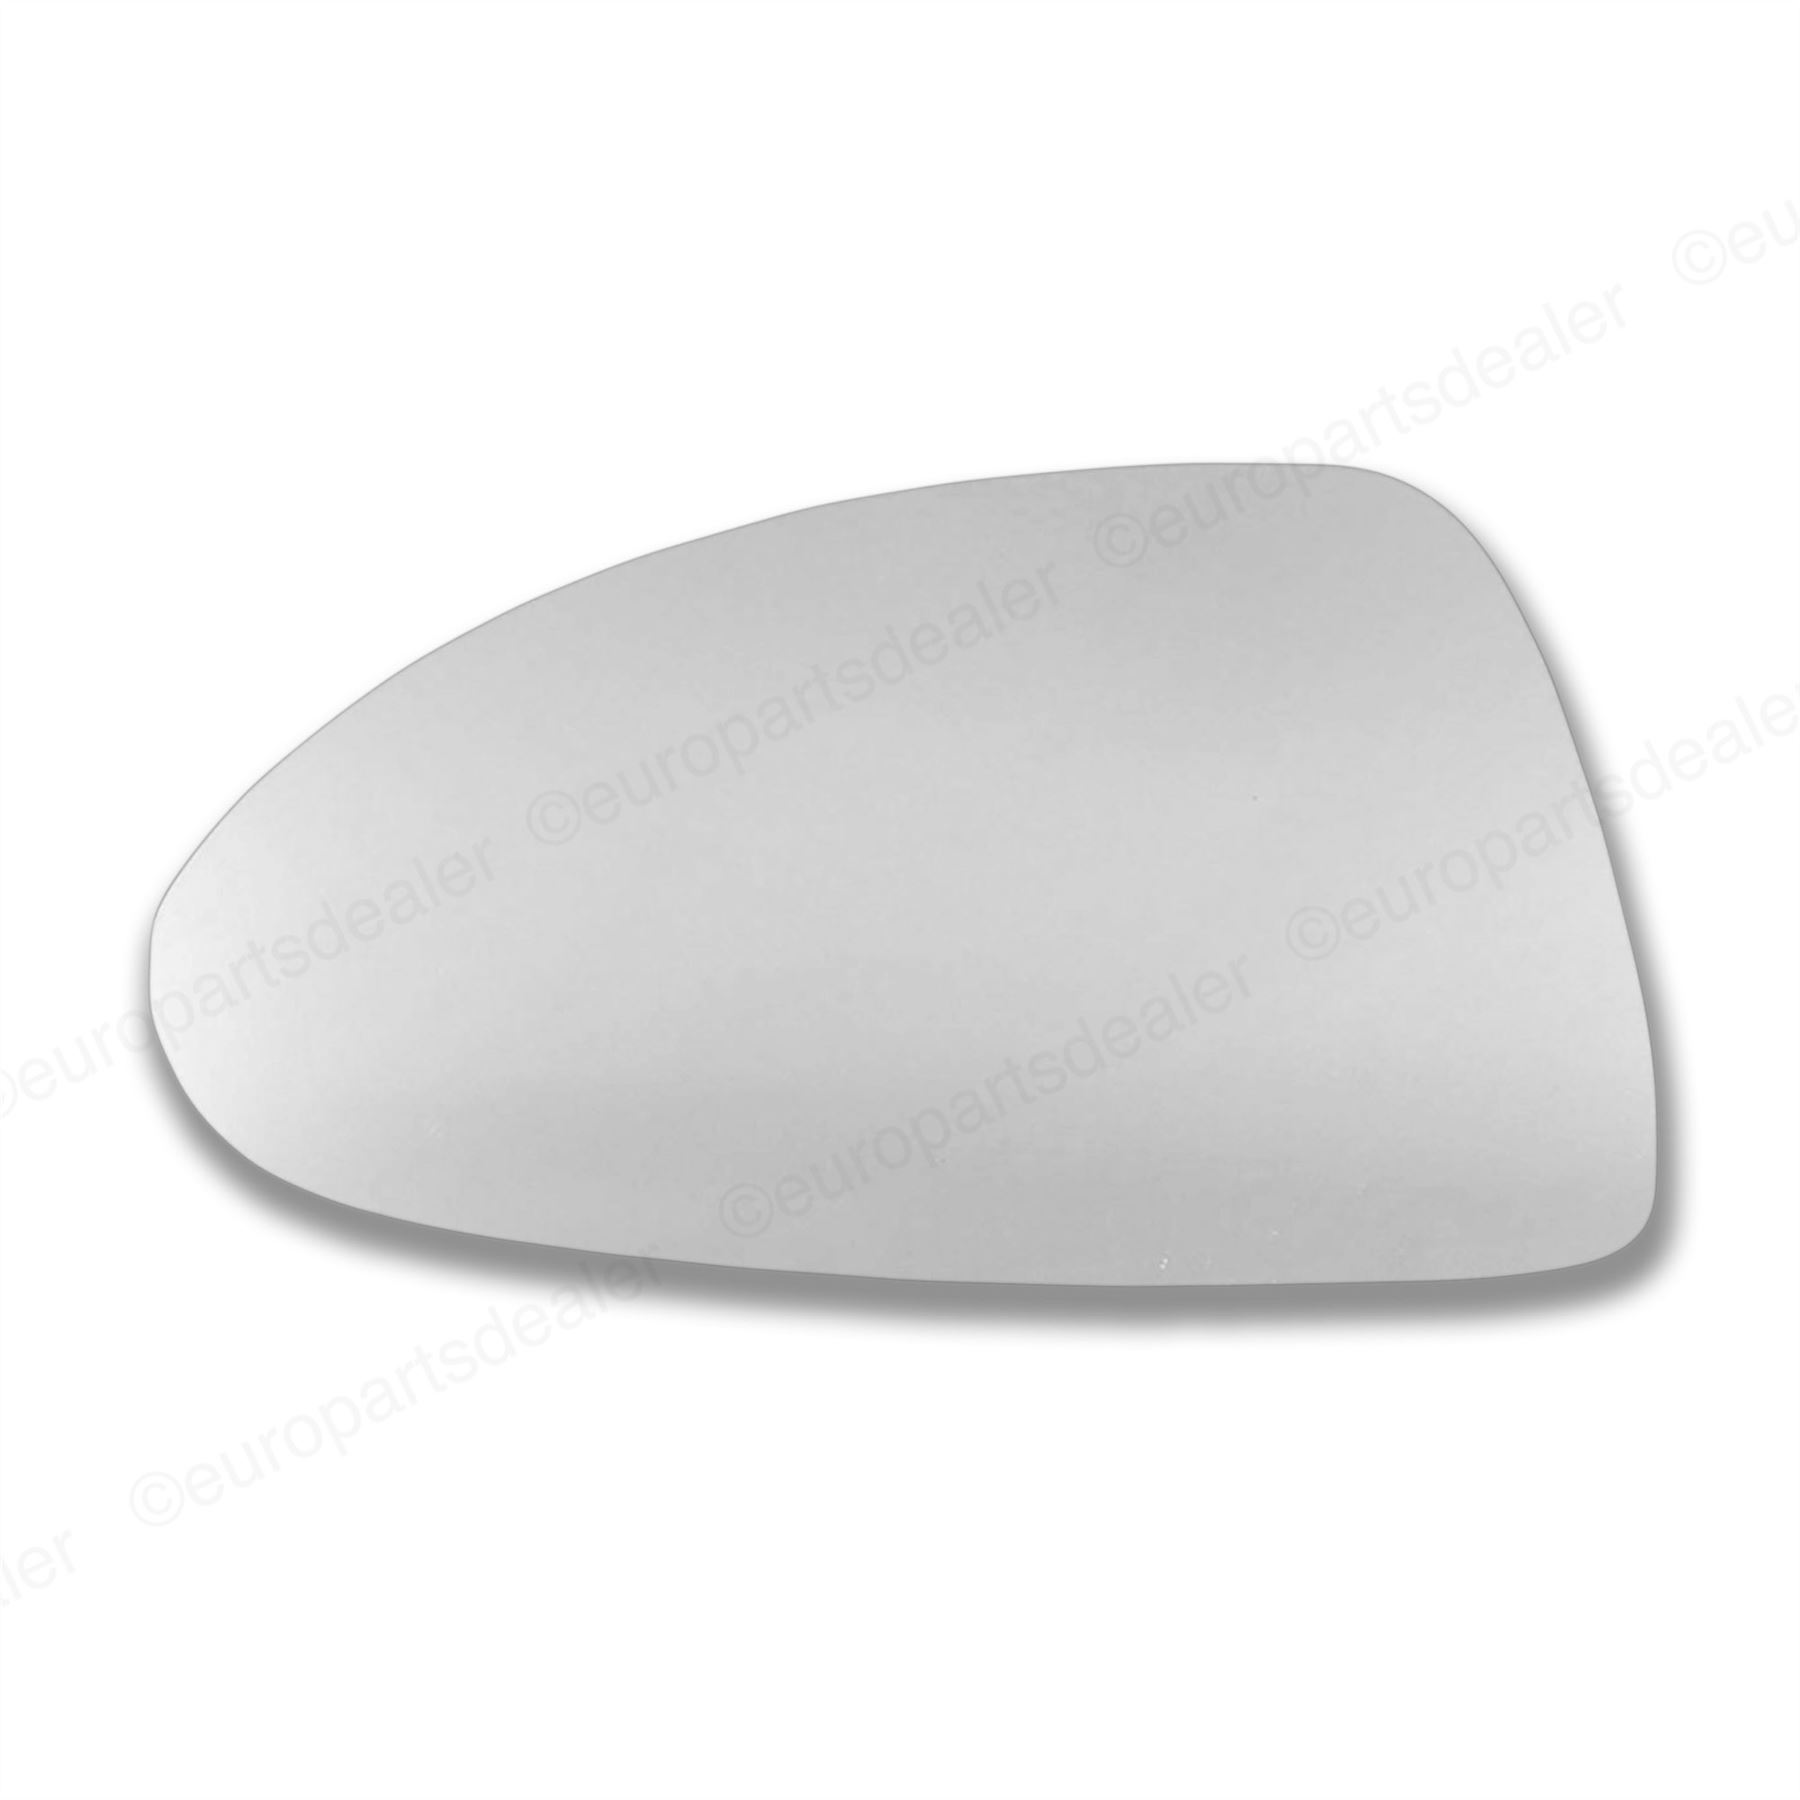 For Vauxhall Corsa D wing mirror glass 06-14 Right Driver side Spherical